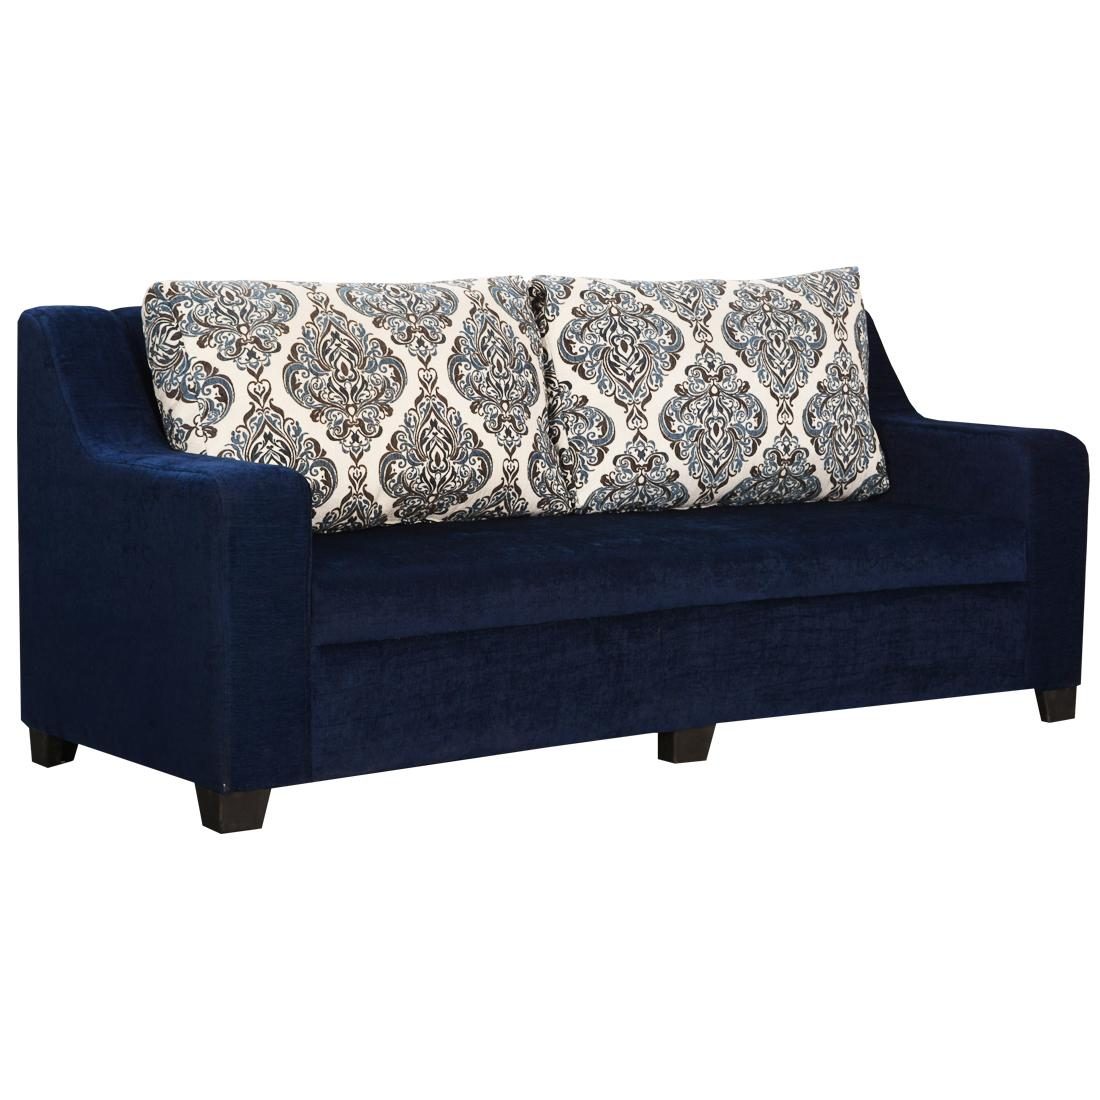 Bharat Lifestyle New Alisa Fabric 3 Seater Sofa Color Blue